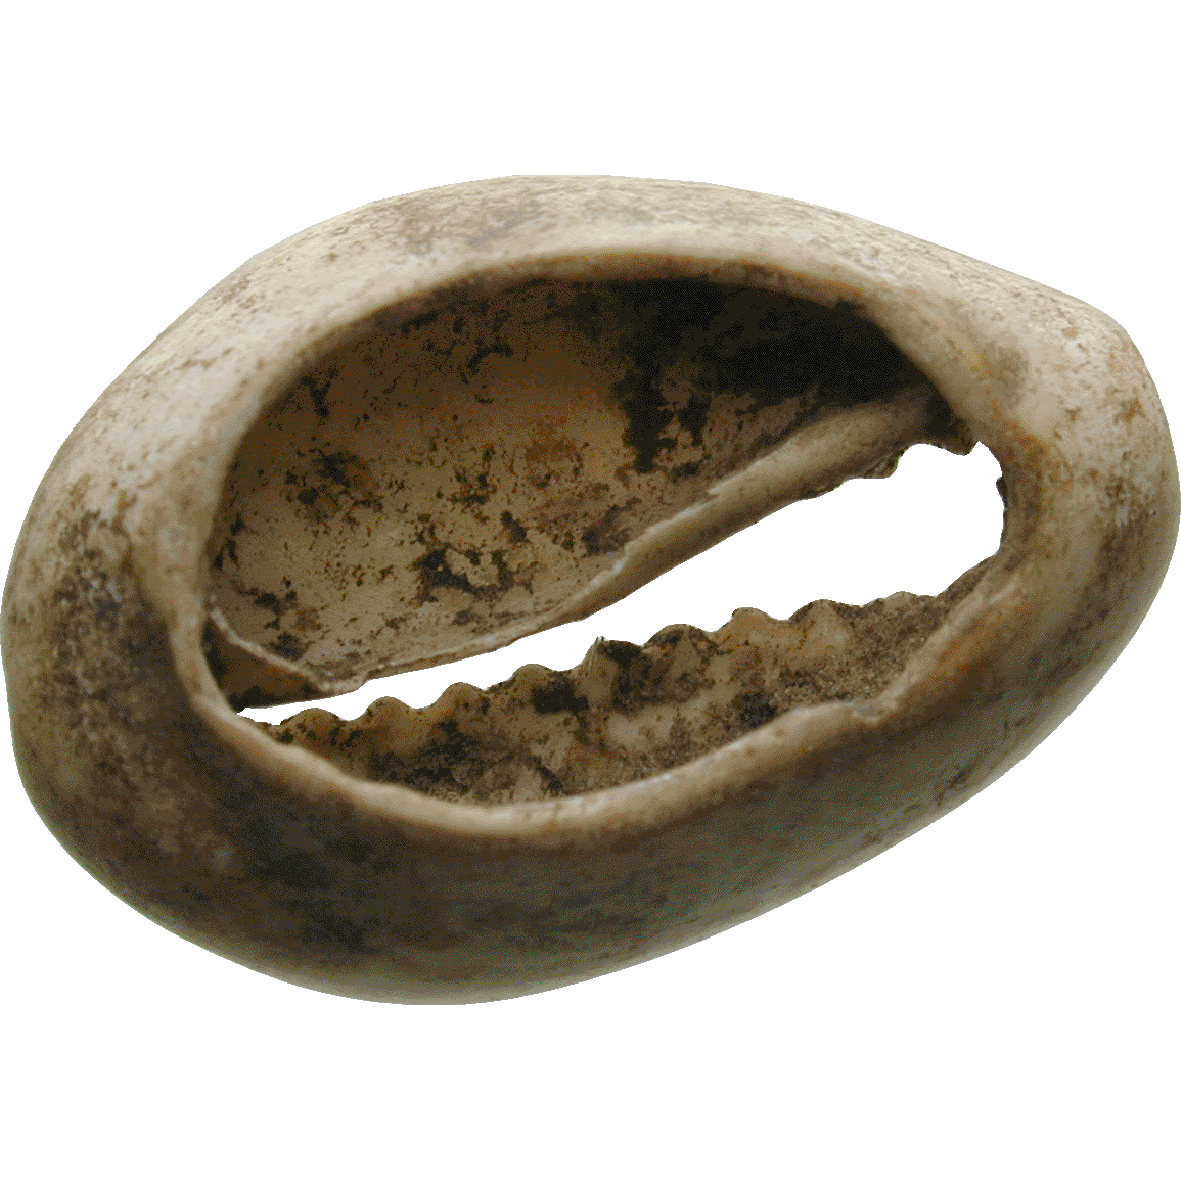 Africa, Cowries (Cypraea moneta and Cypraea annulus) in a Clay Pot (reverse)